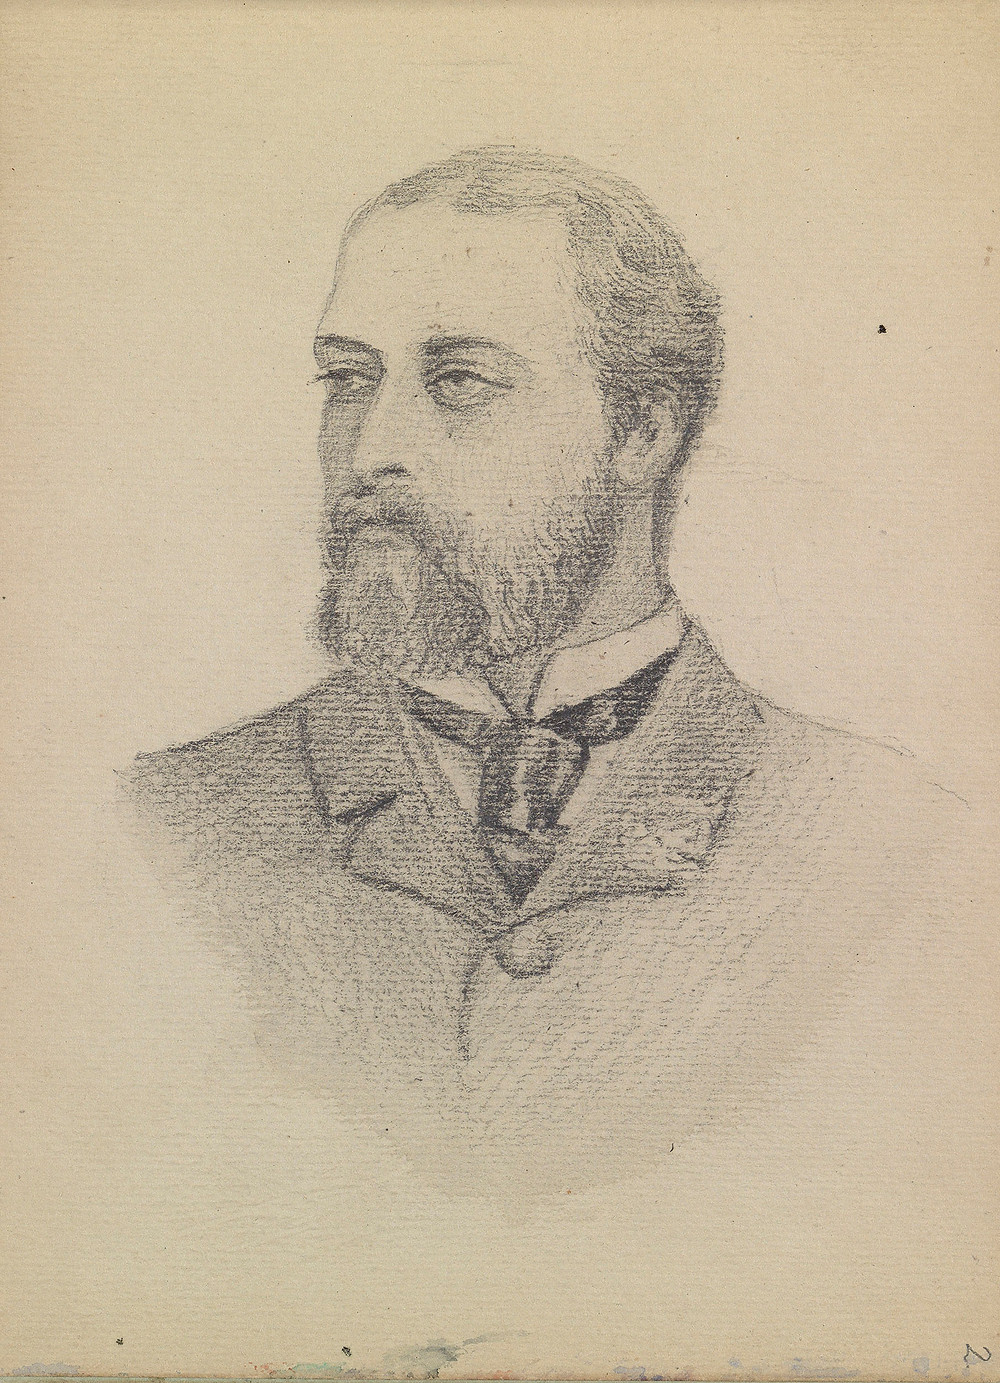 sketch Edward VII, when Prince of Wales c. 1880 by Queen Alexandra when Princess of Wales  Royal Collection Trust/(c) Her Majesty Queen Elizabeth II 2019